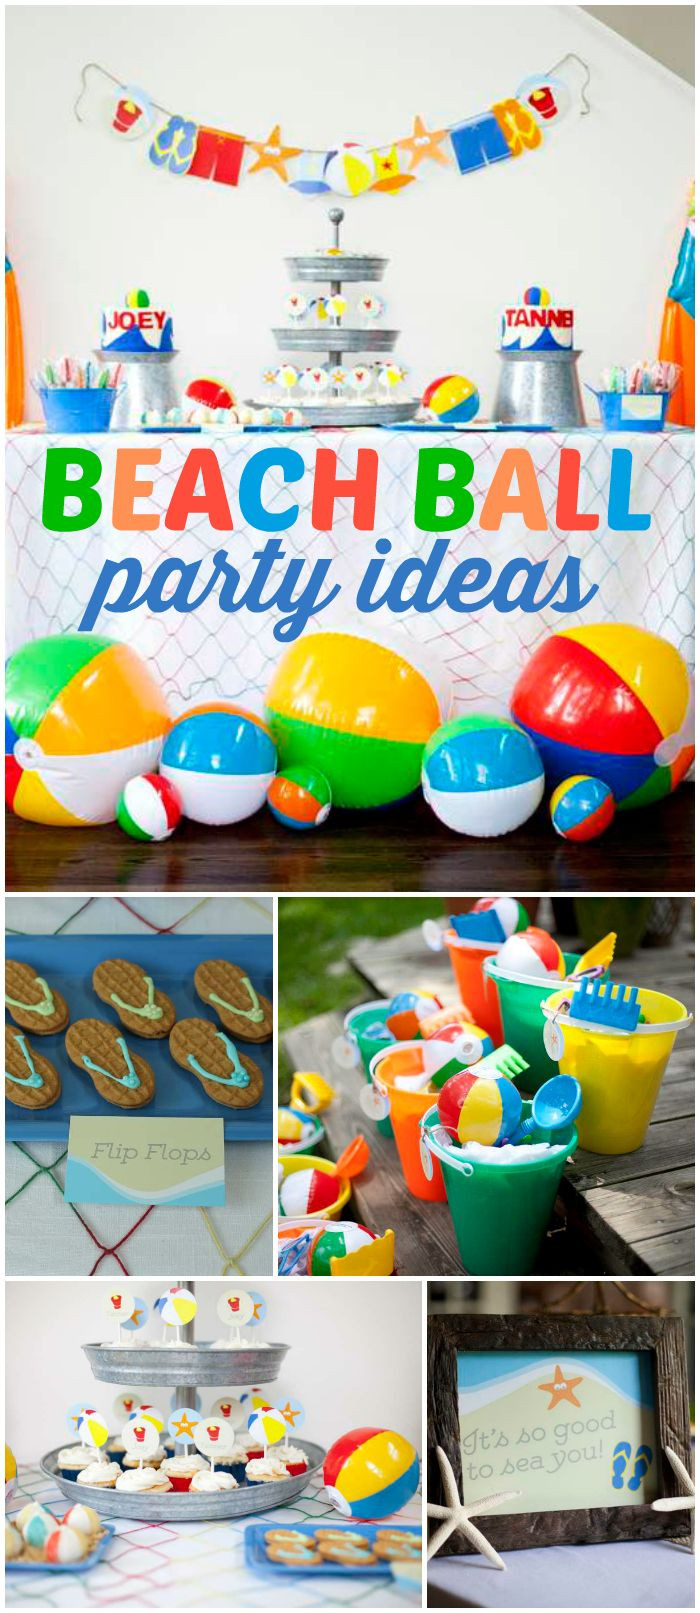 Summer Birthday Party Ideas For 4 Year Old Boy  Best 25 Kids beach party ideas on Pinterest